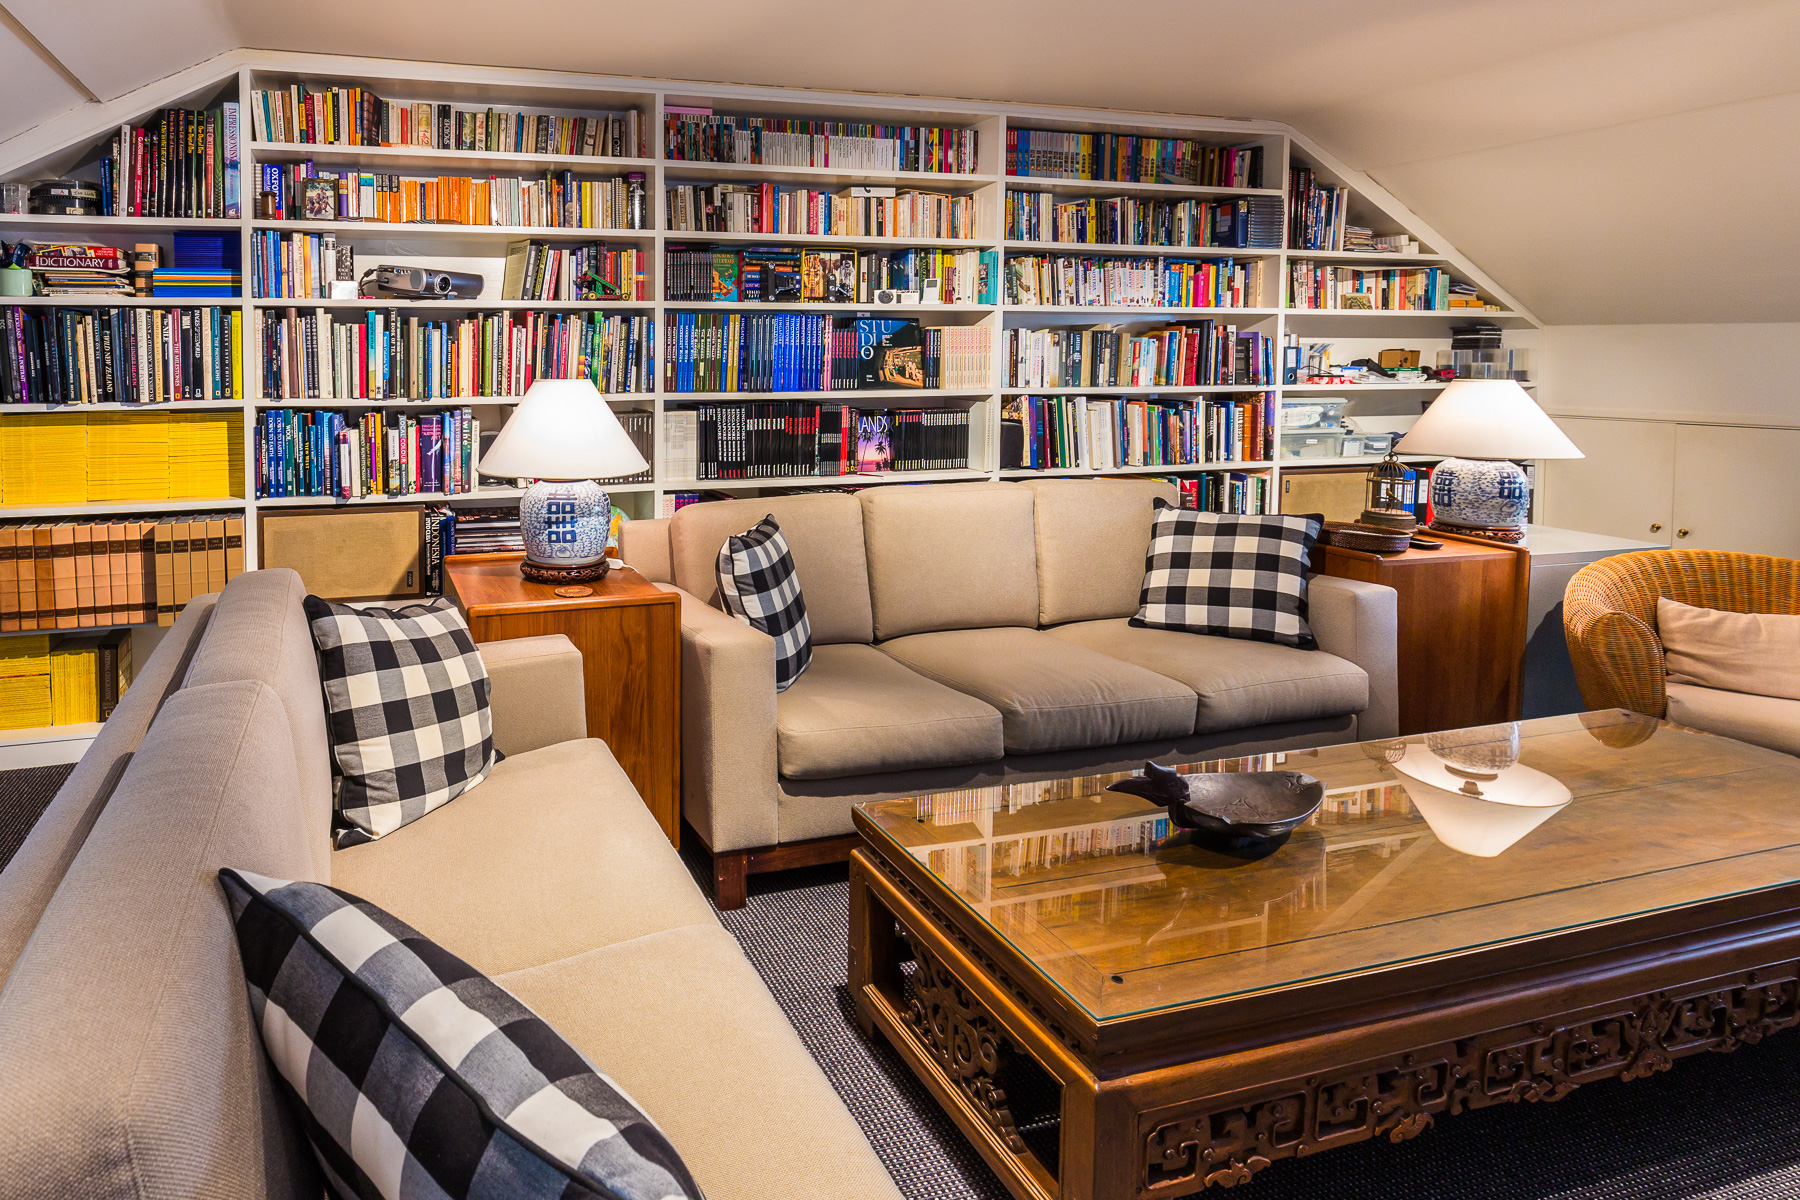 The upstairs loft with library and lounge.